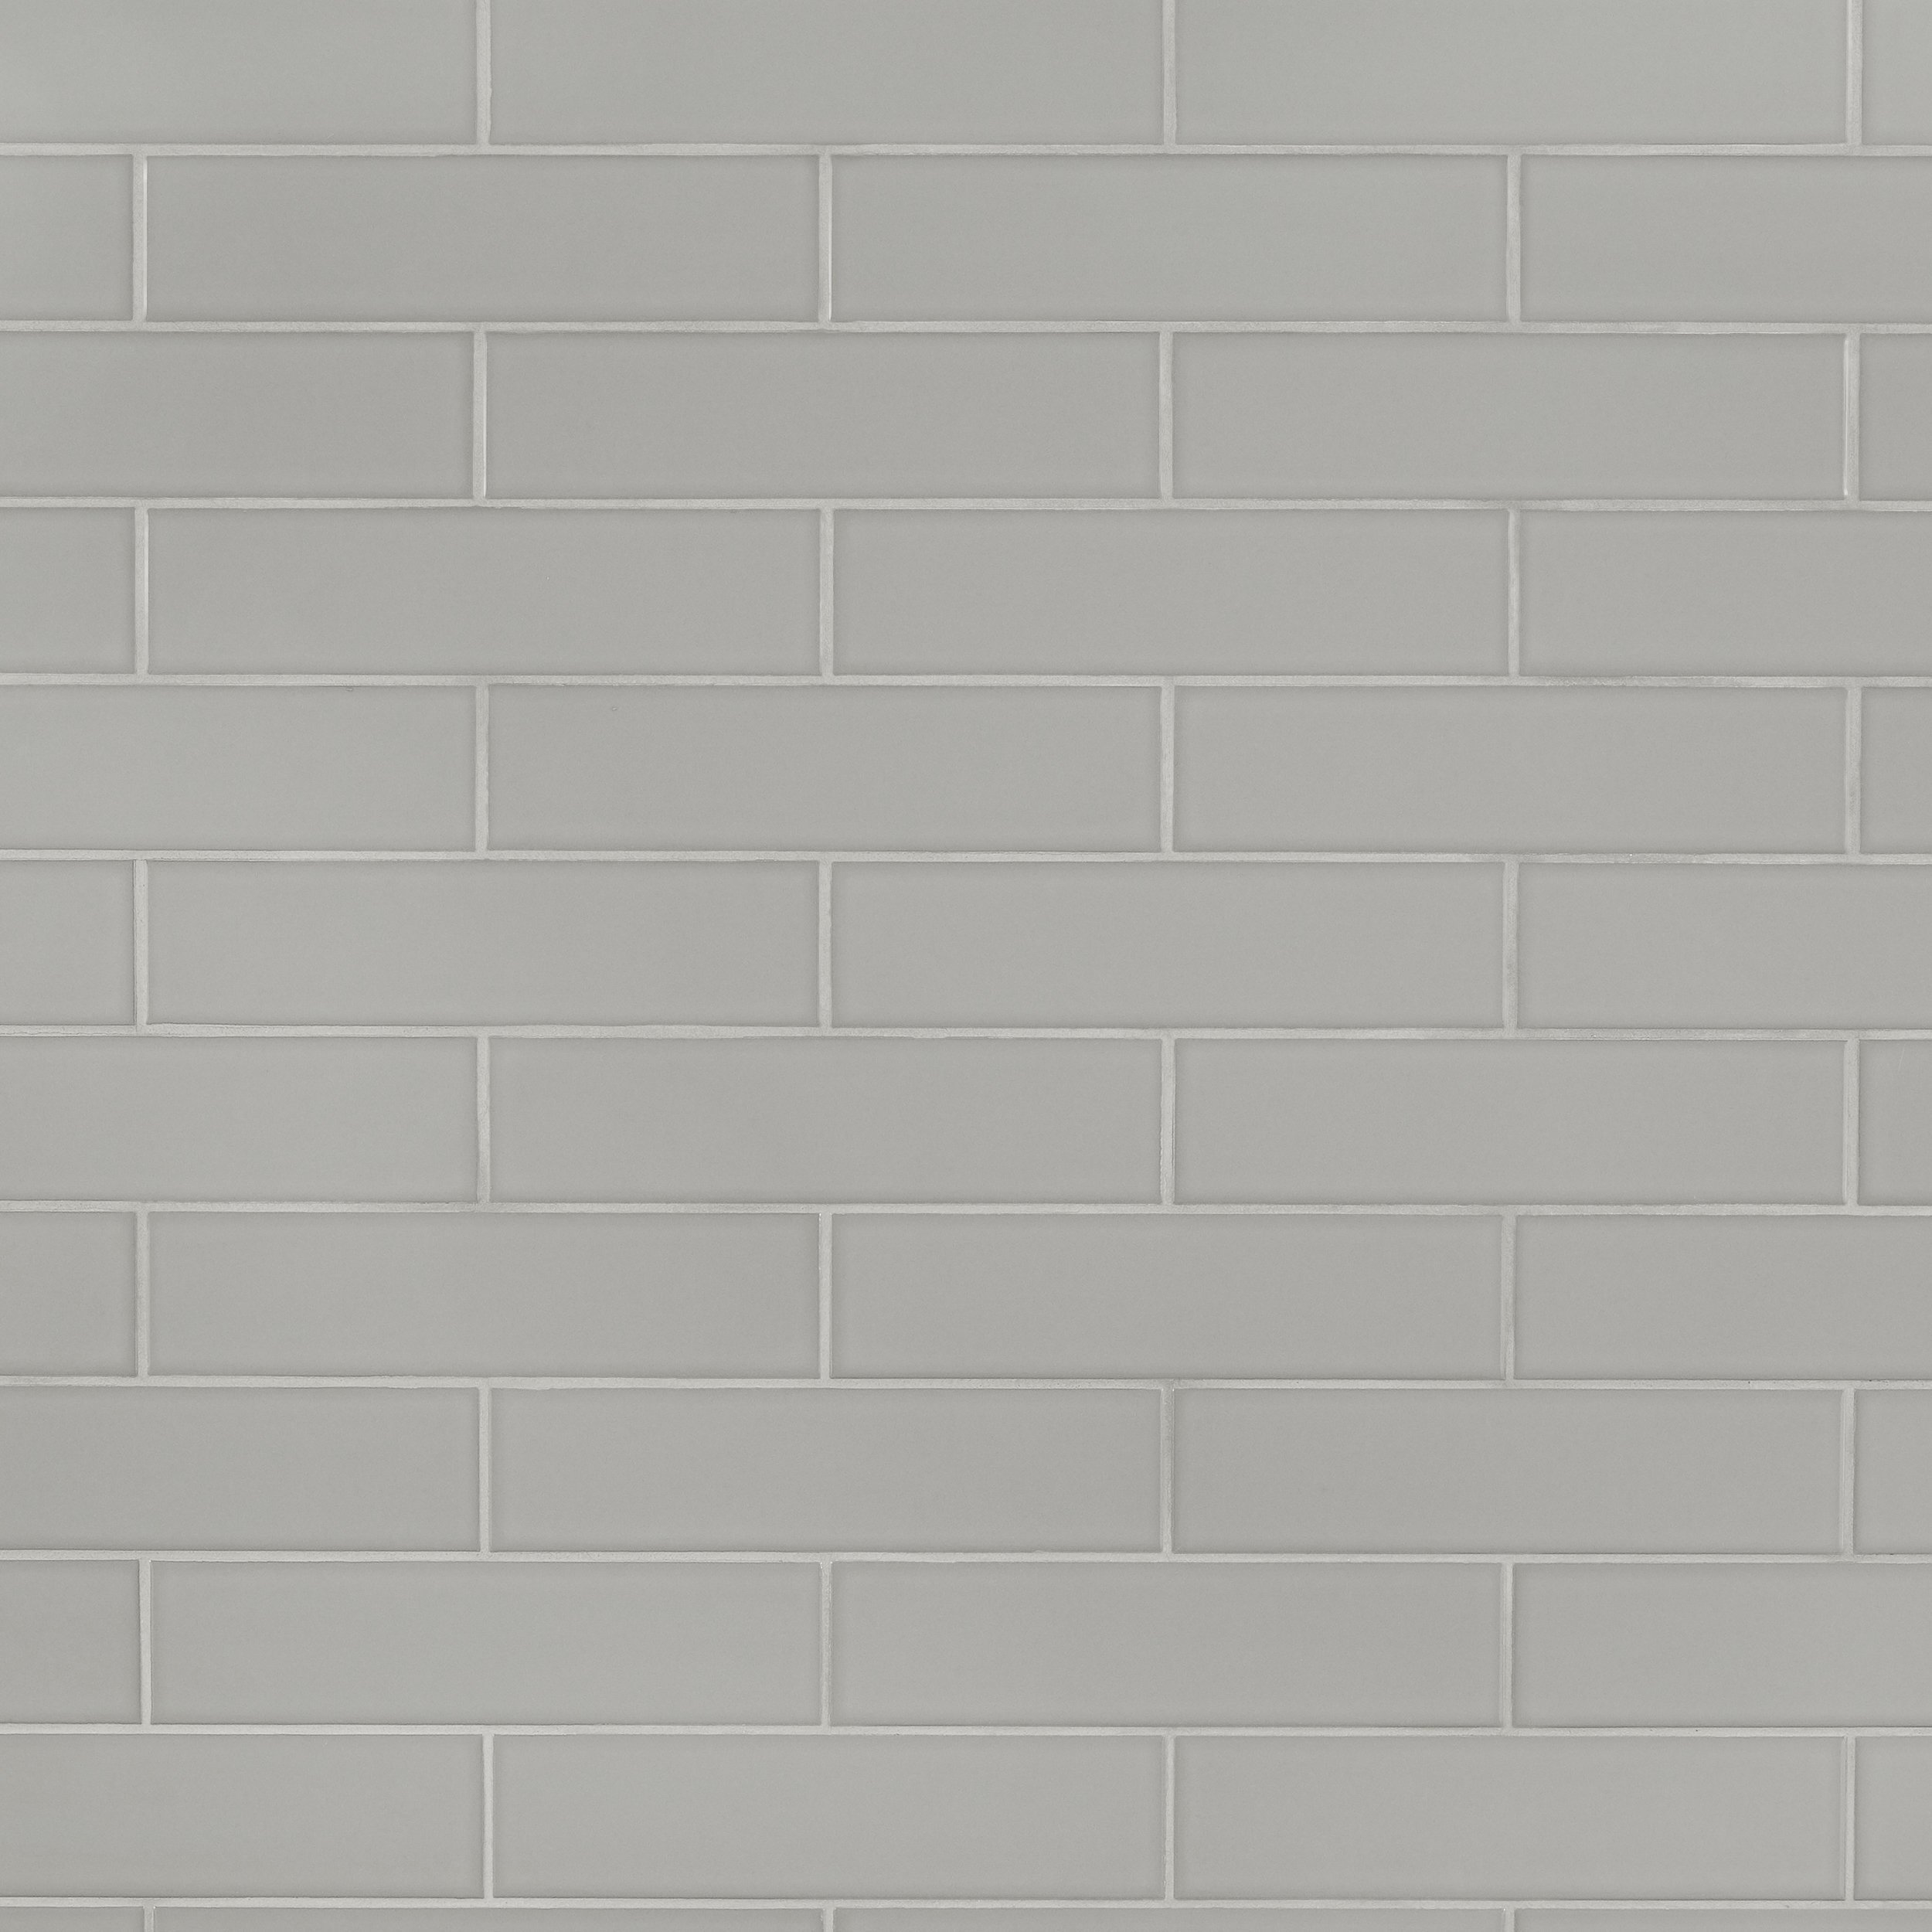 Slate Gray Ceramic Tile 3 X 12 100253483 Floor And Decor